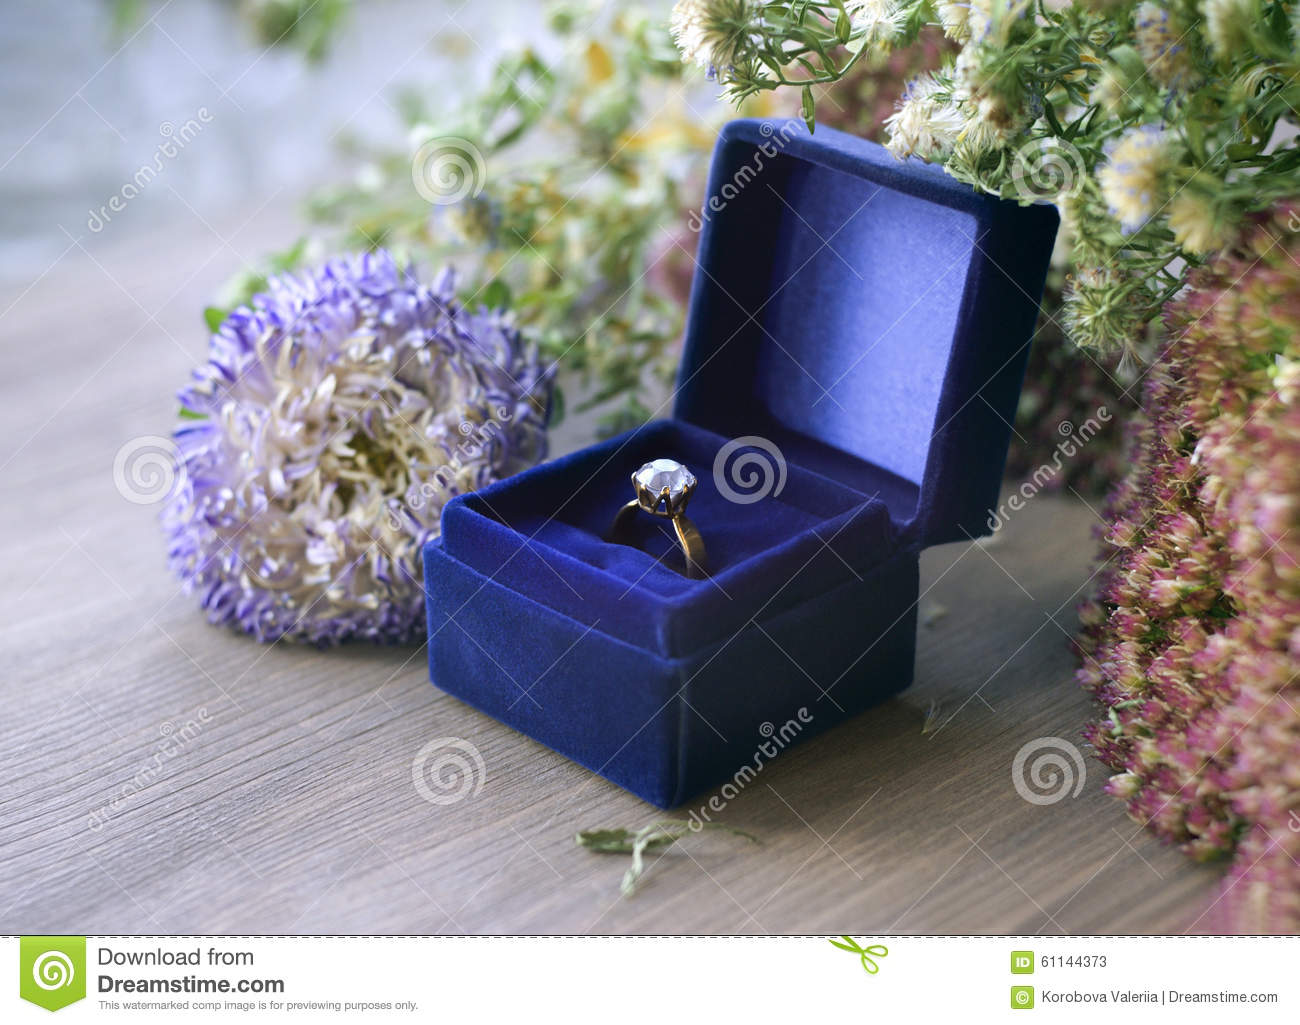 Vintage gold diamond engagement ring in blue velvet box